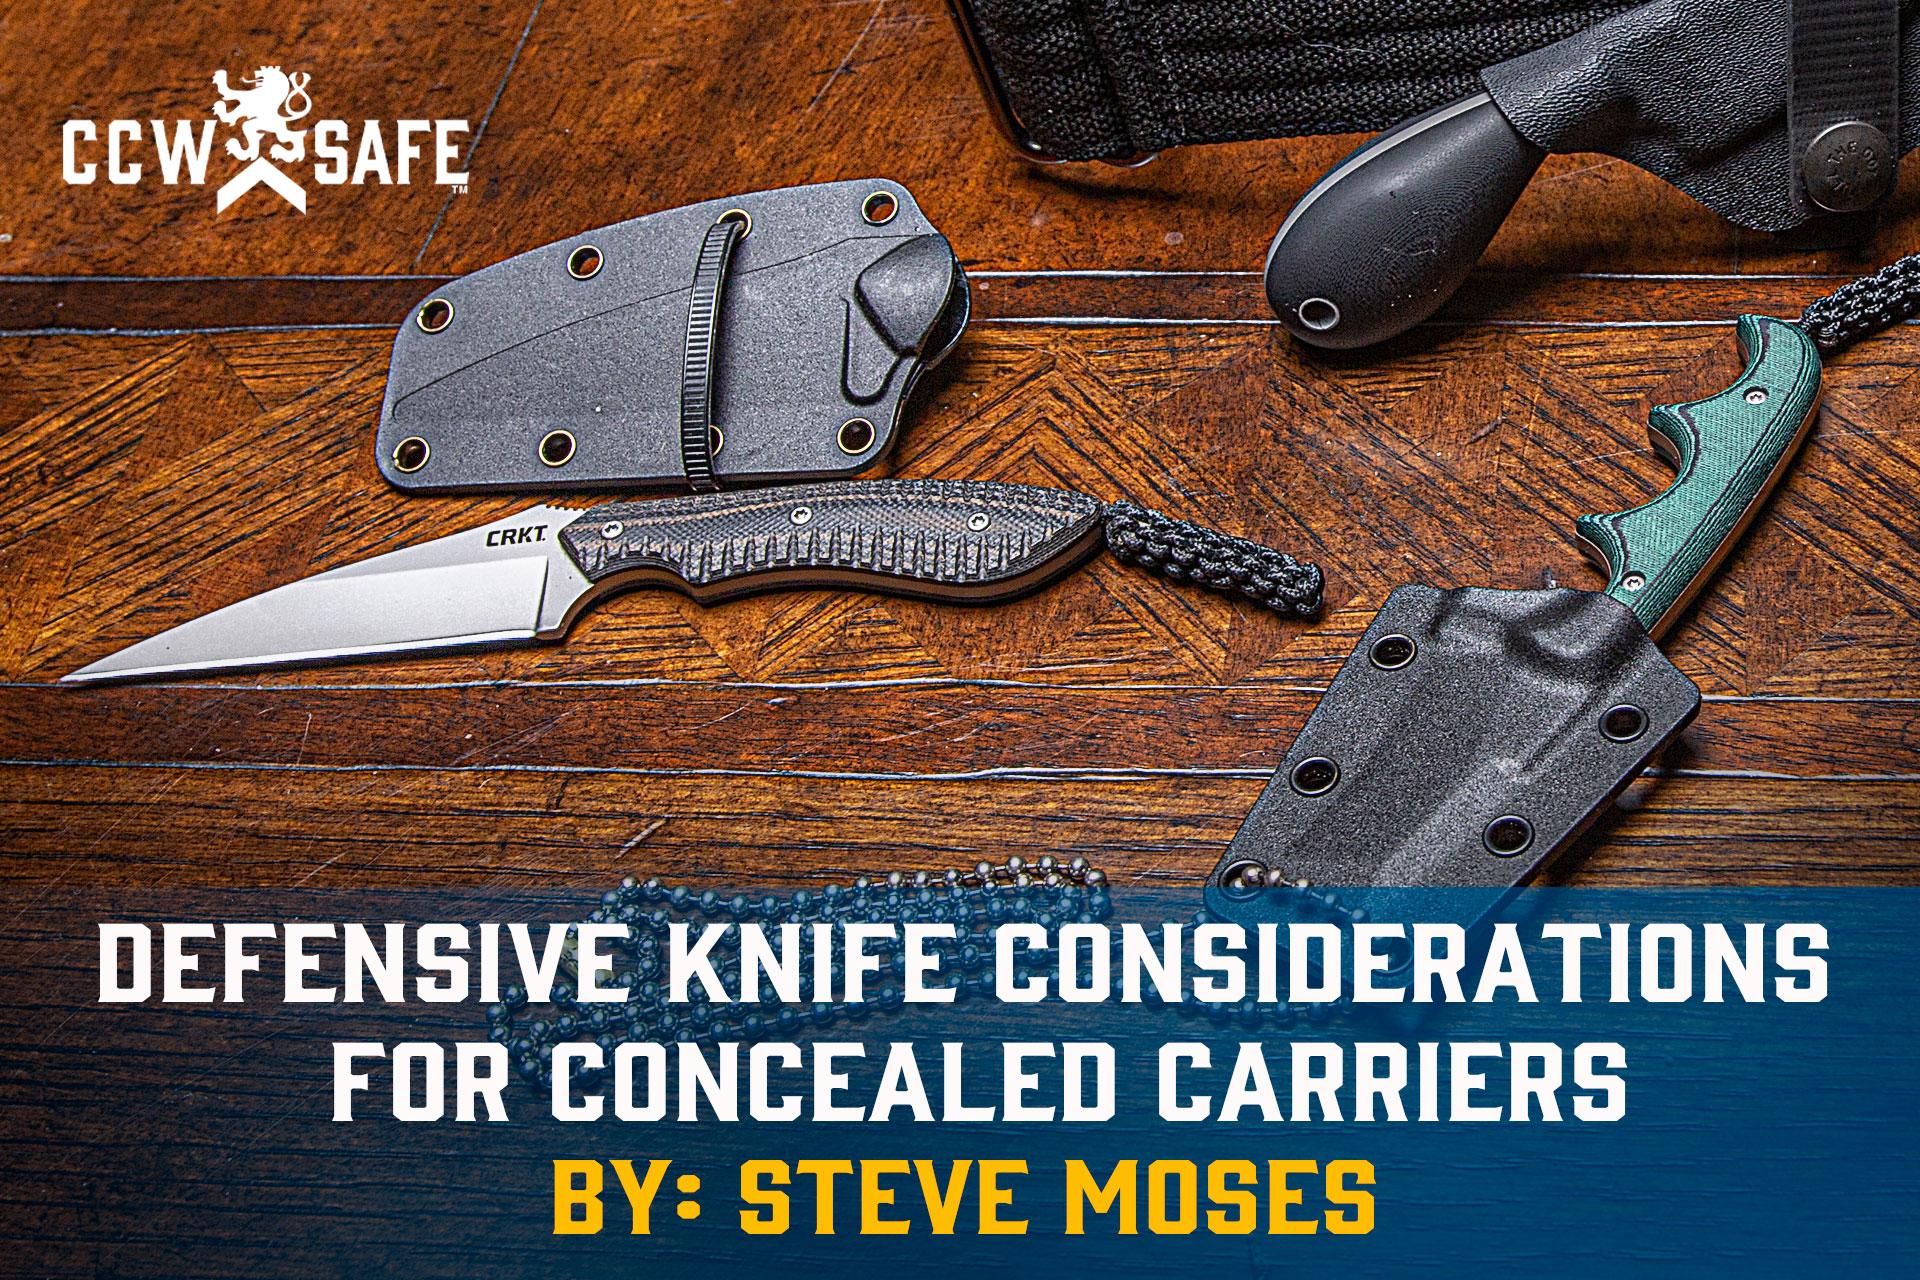 DEFENSIVE KNIFE CONSIDERATIONS FOR CONCEALED CARRIERS